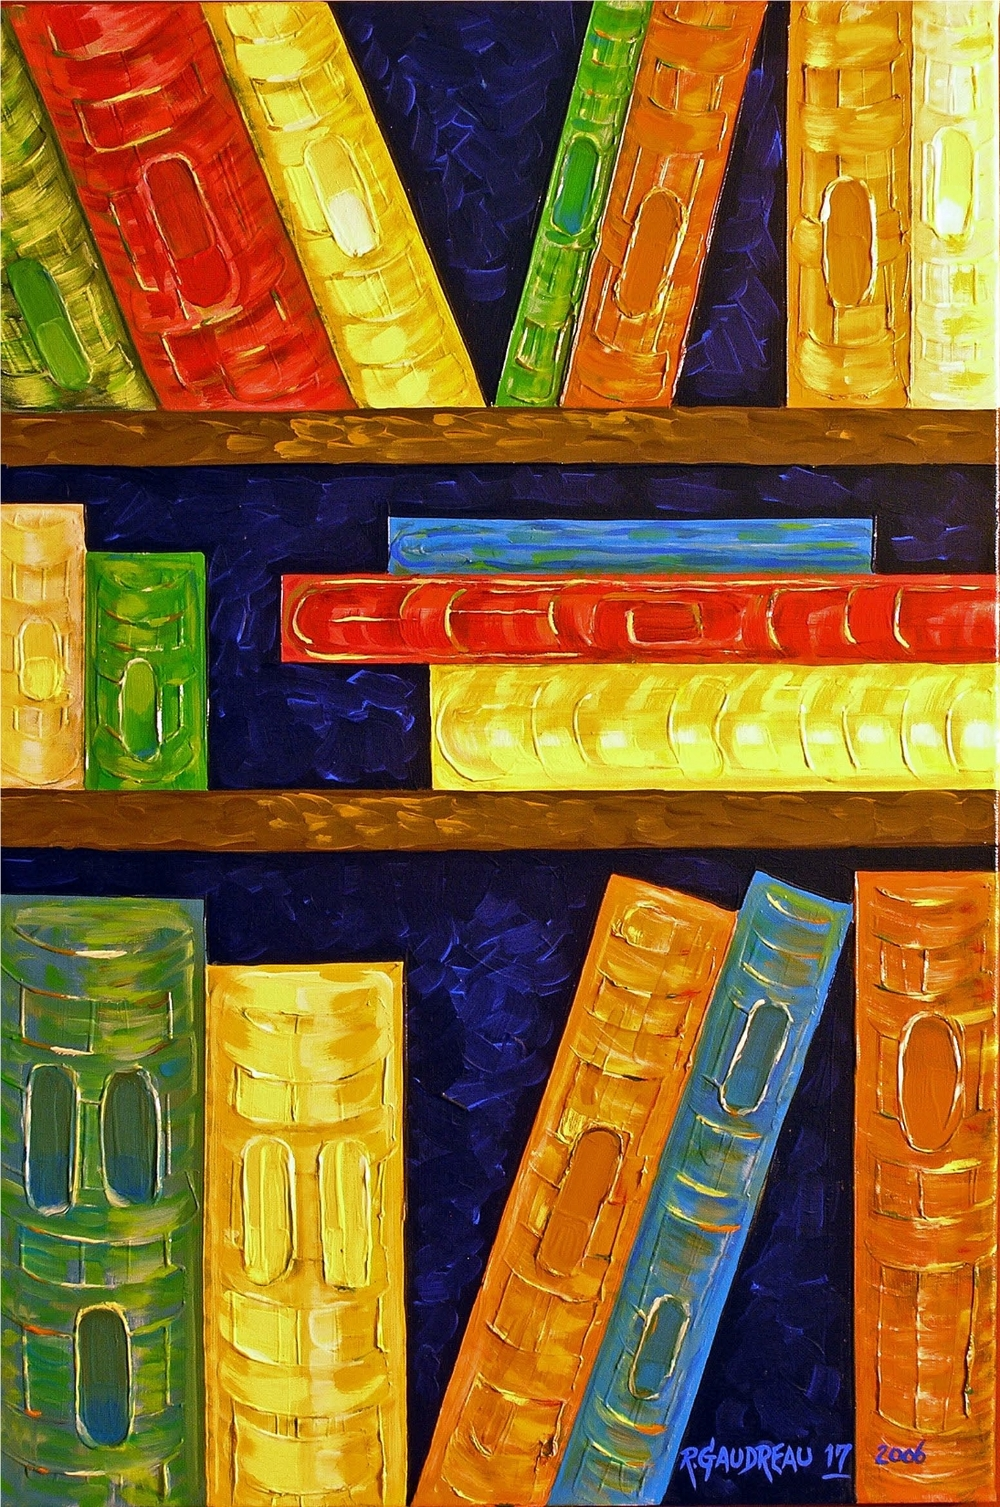 17  Books 2006 oil on canvas 36 x 24 inches